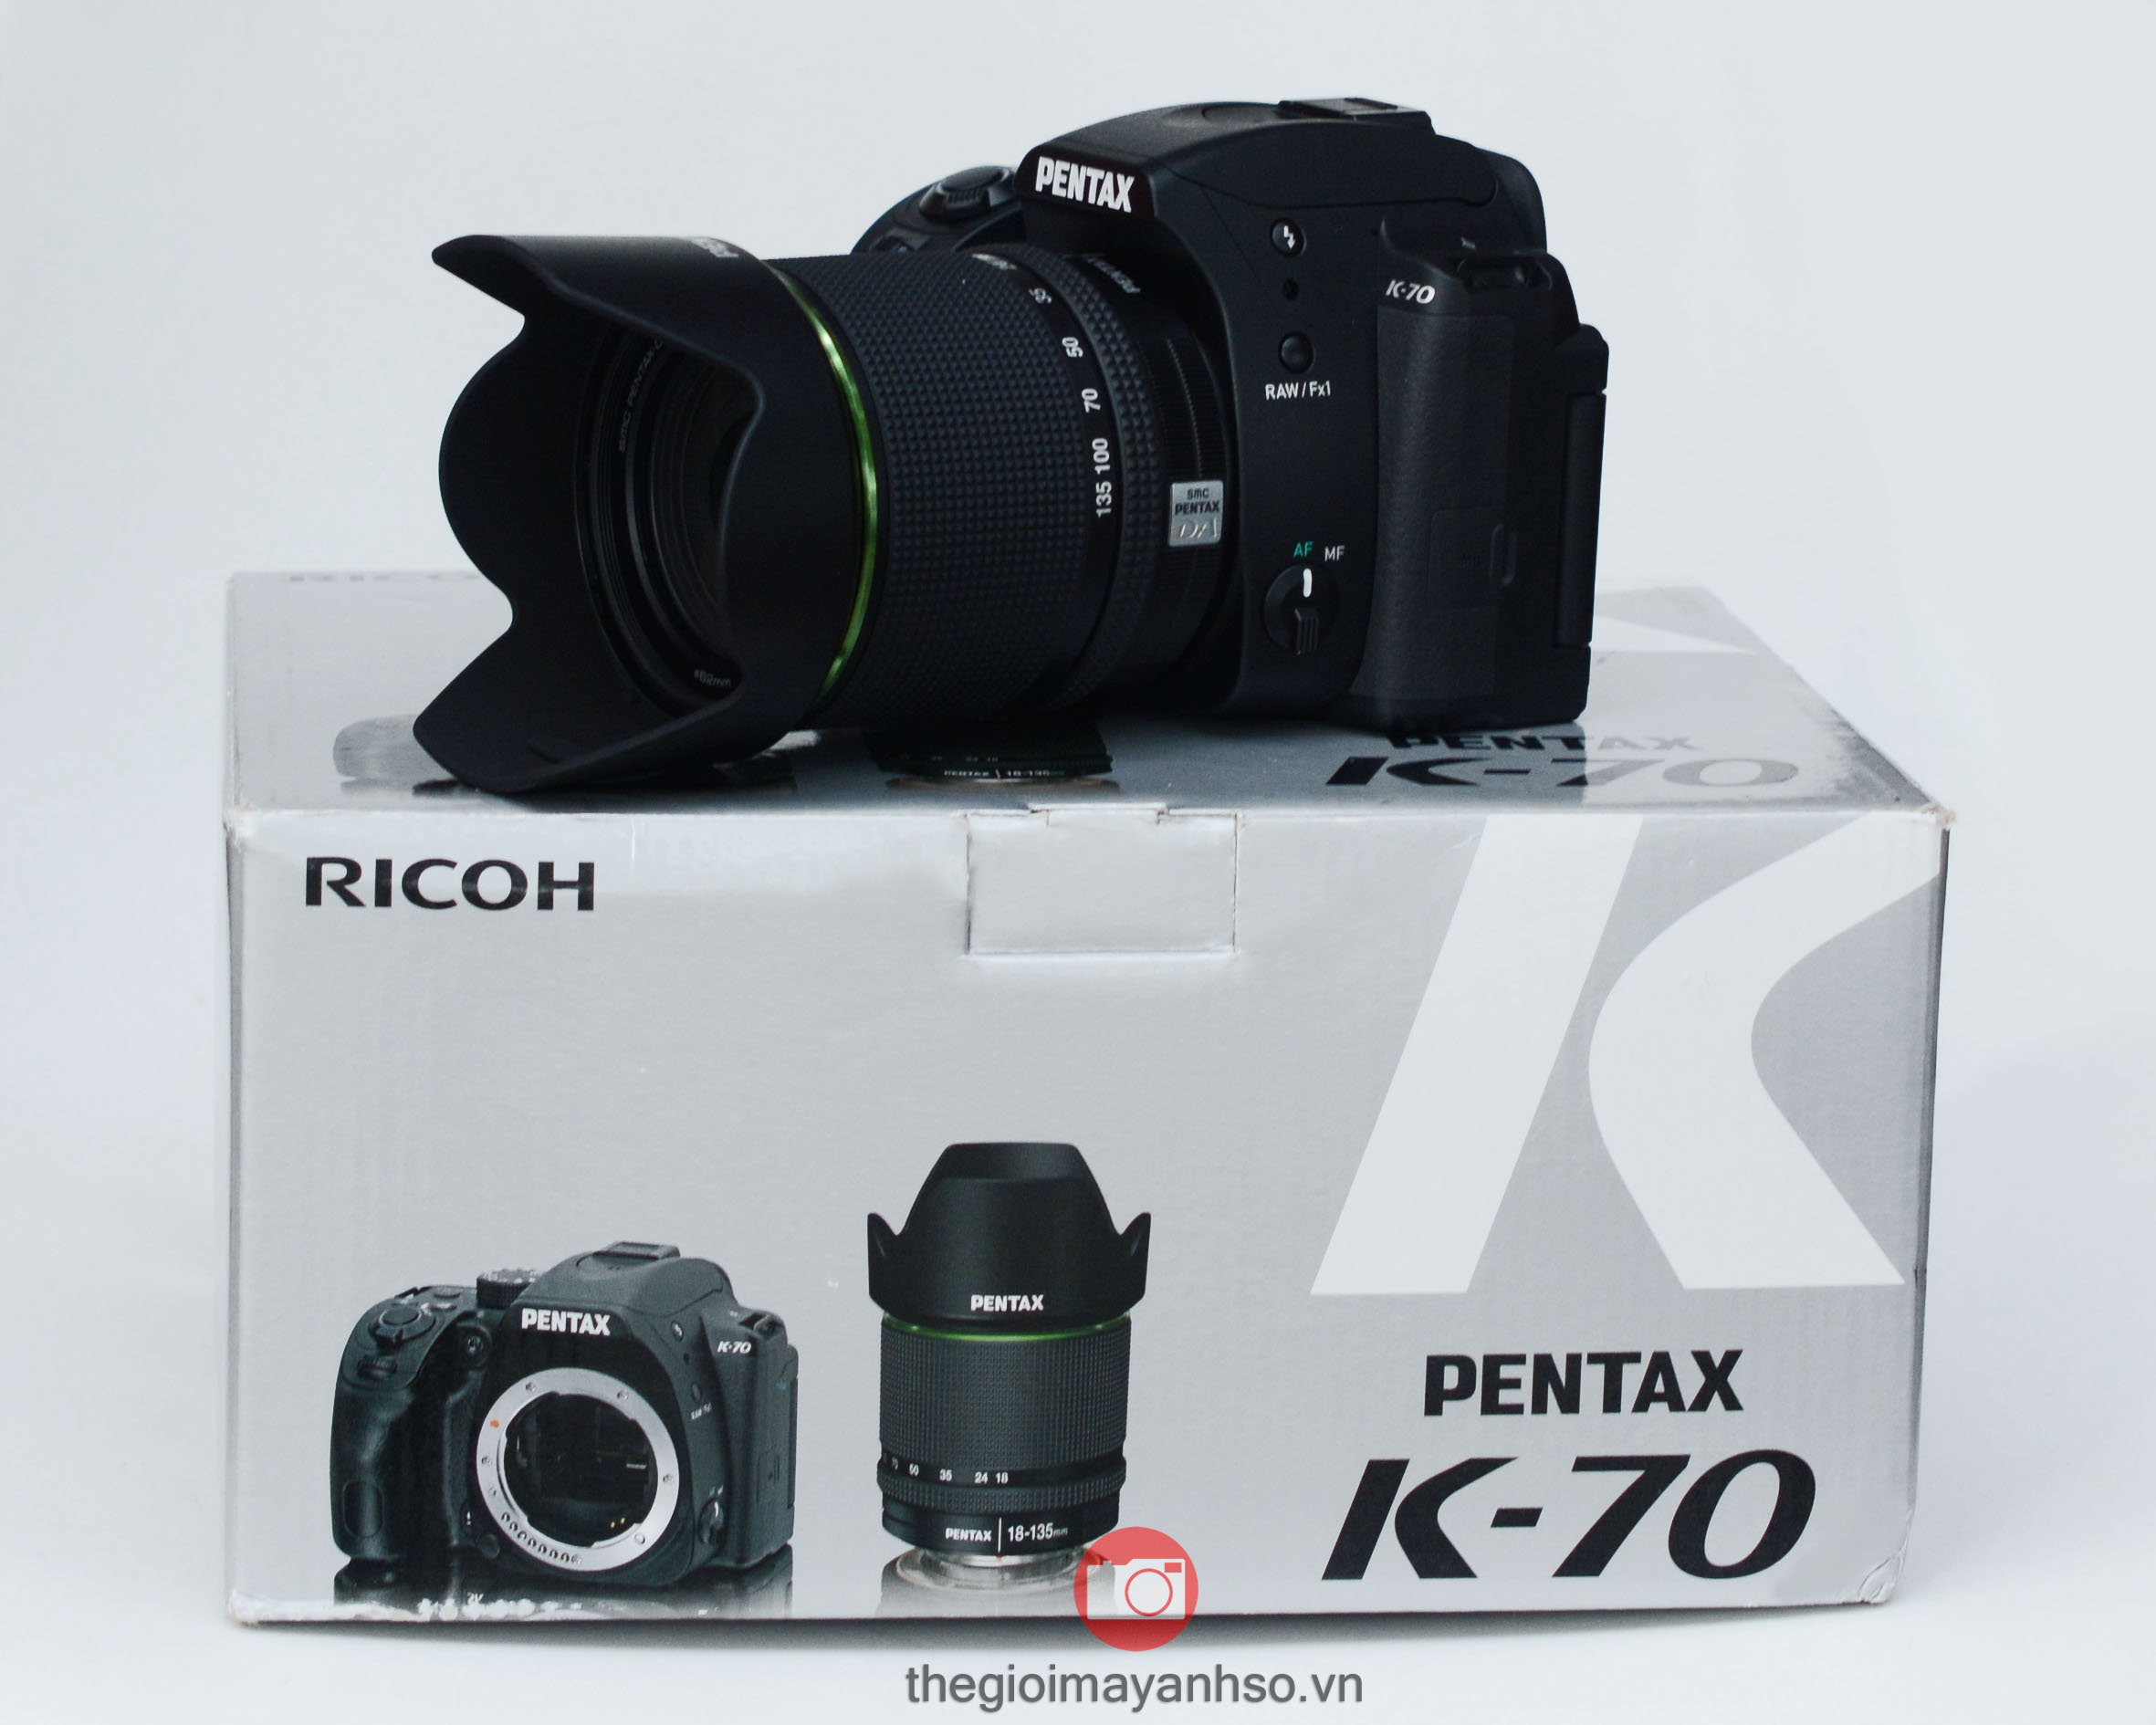 Pentax K-70 kit 18-135mm f/3.5-5.6 ED AL DC WR